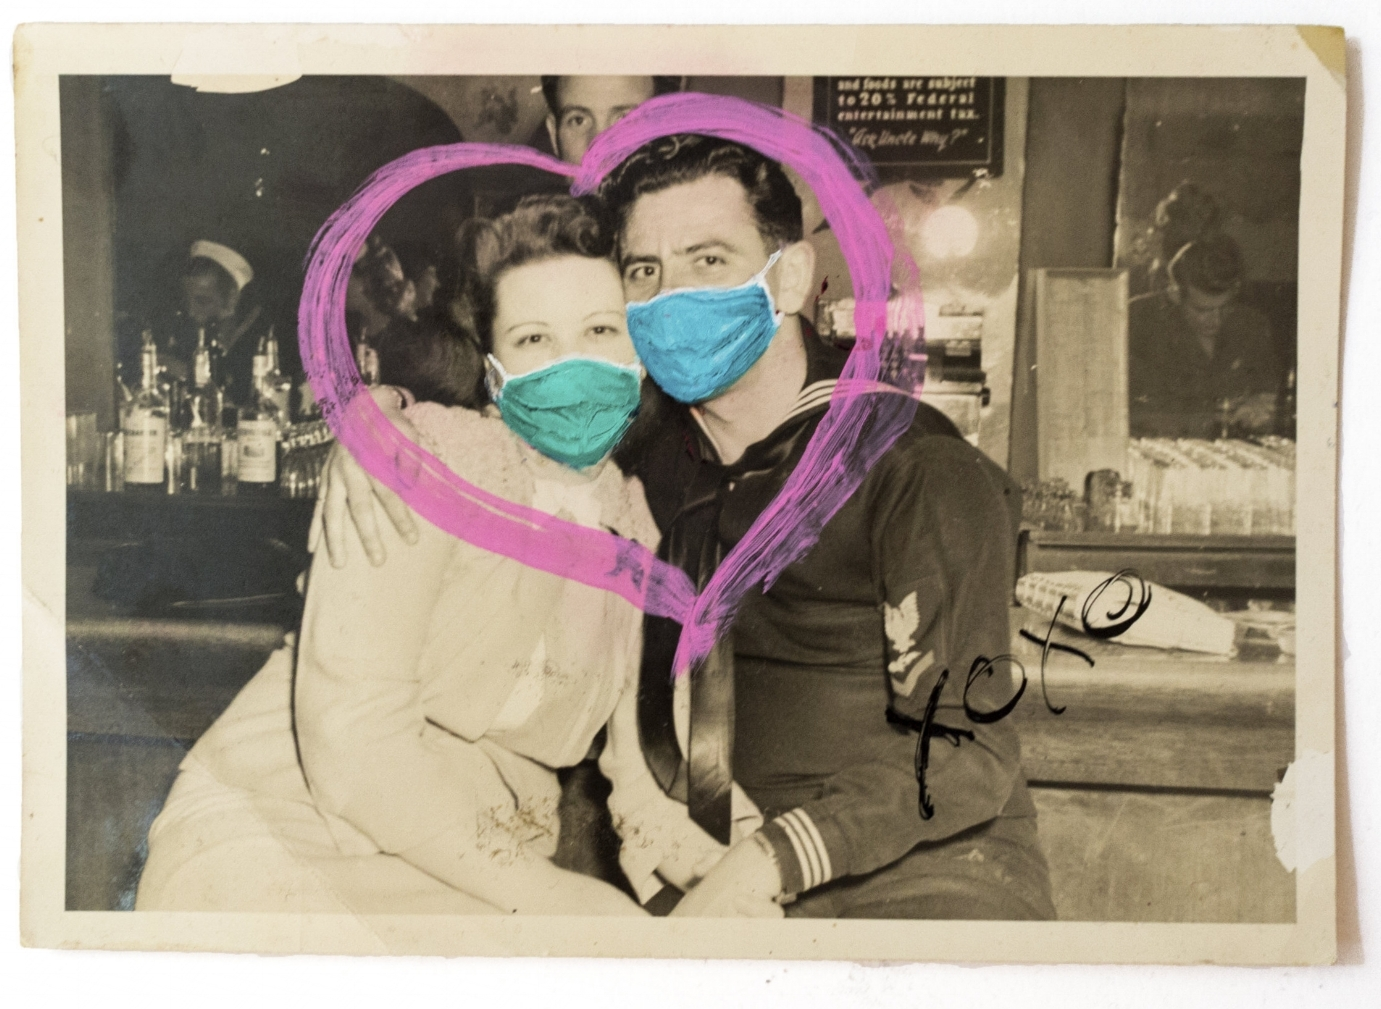 - |ANONYMOUS LOVE| MASKED MEMORIESoil + marker on vintage photograph